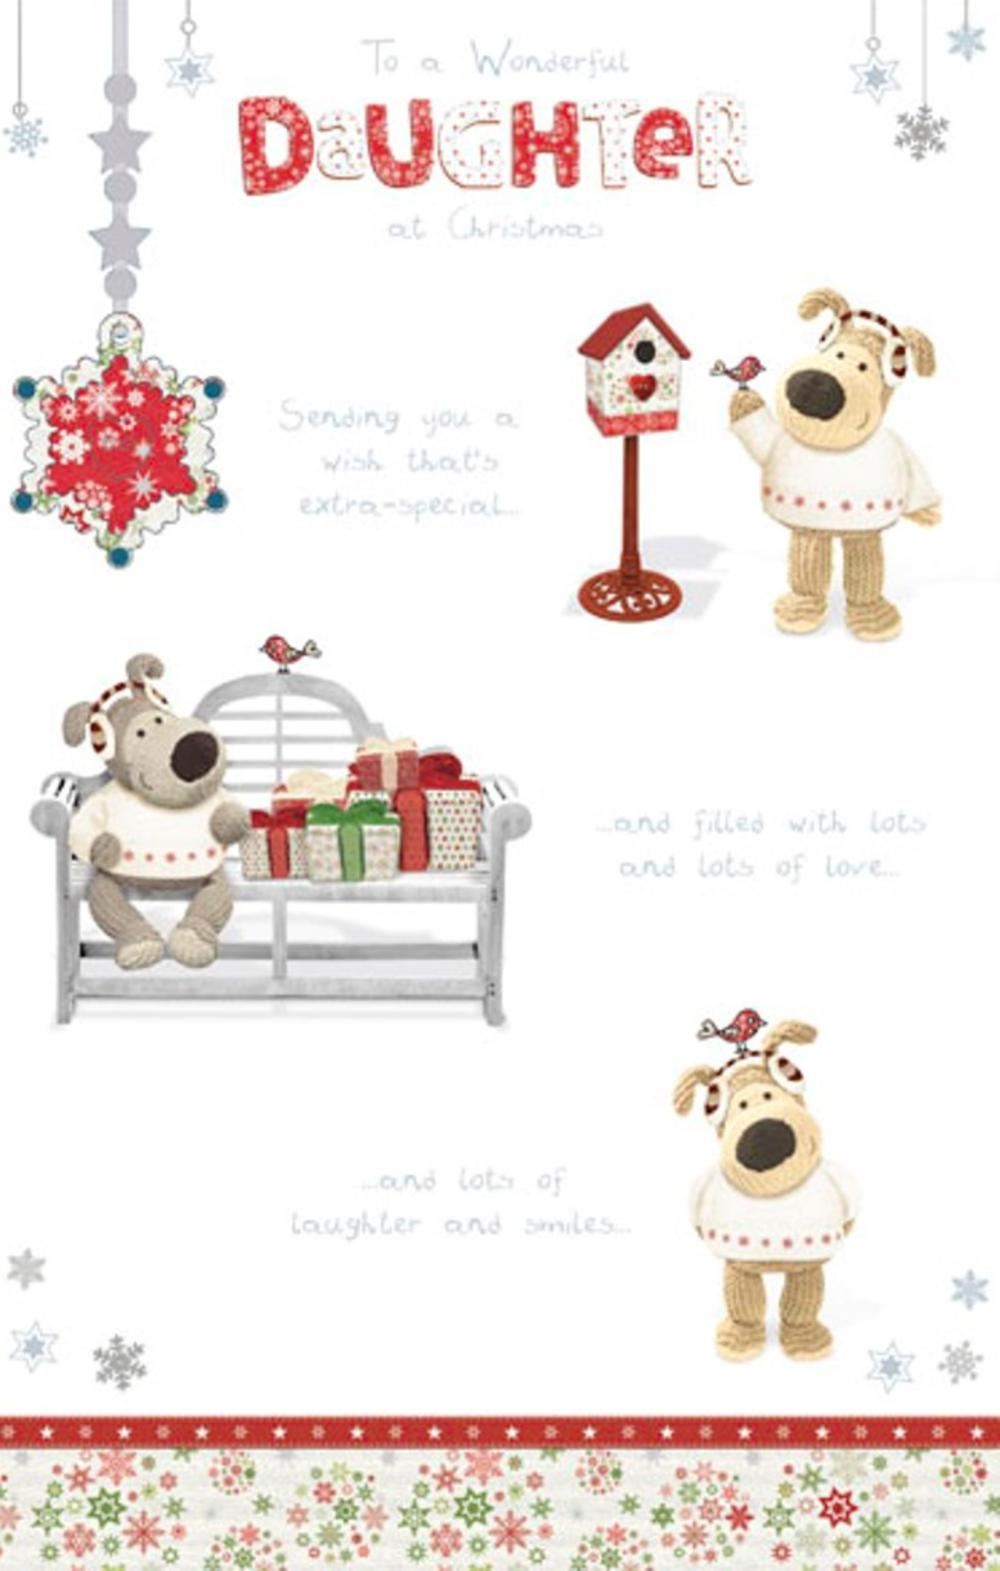 Boofle Wonderful Daughter Christmas Greeting Card